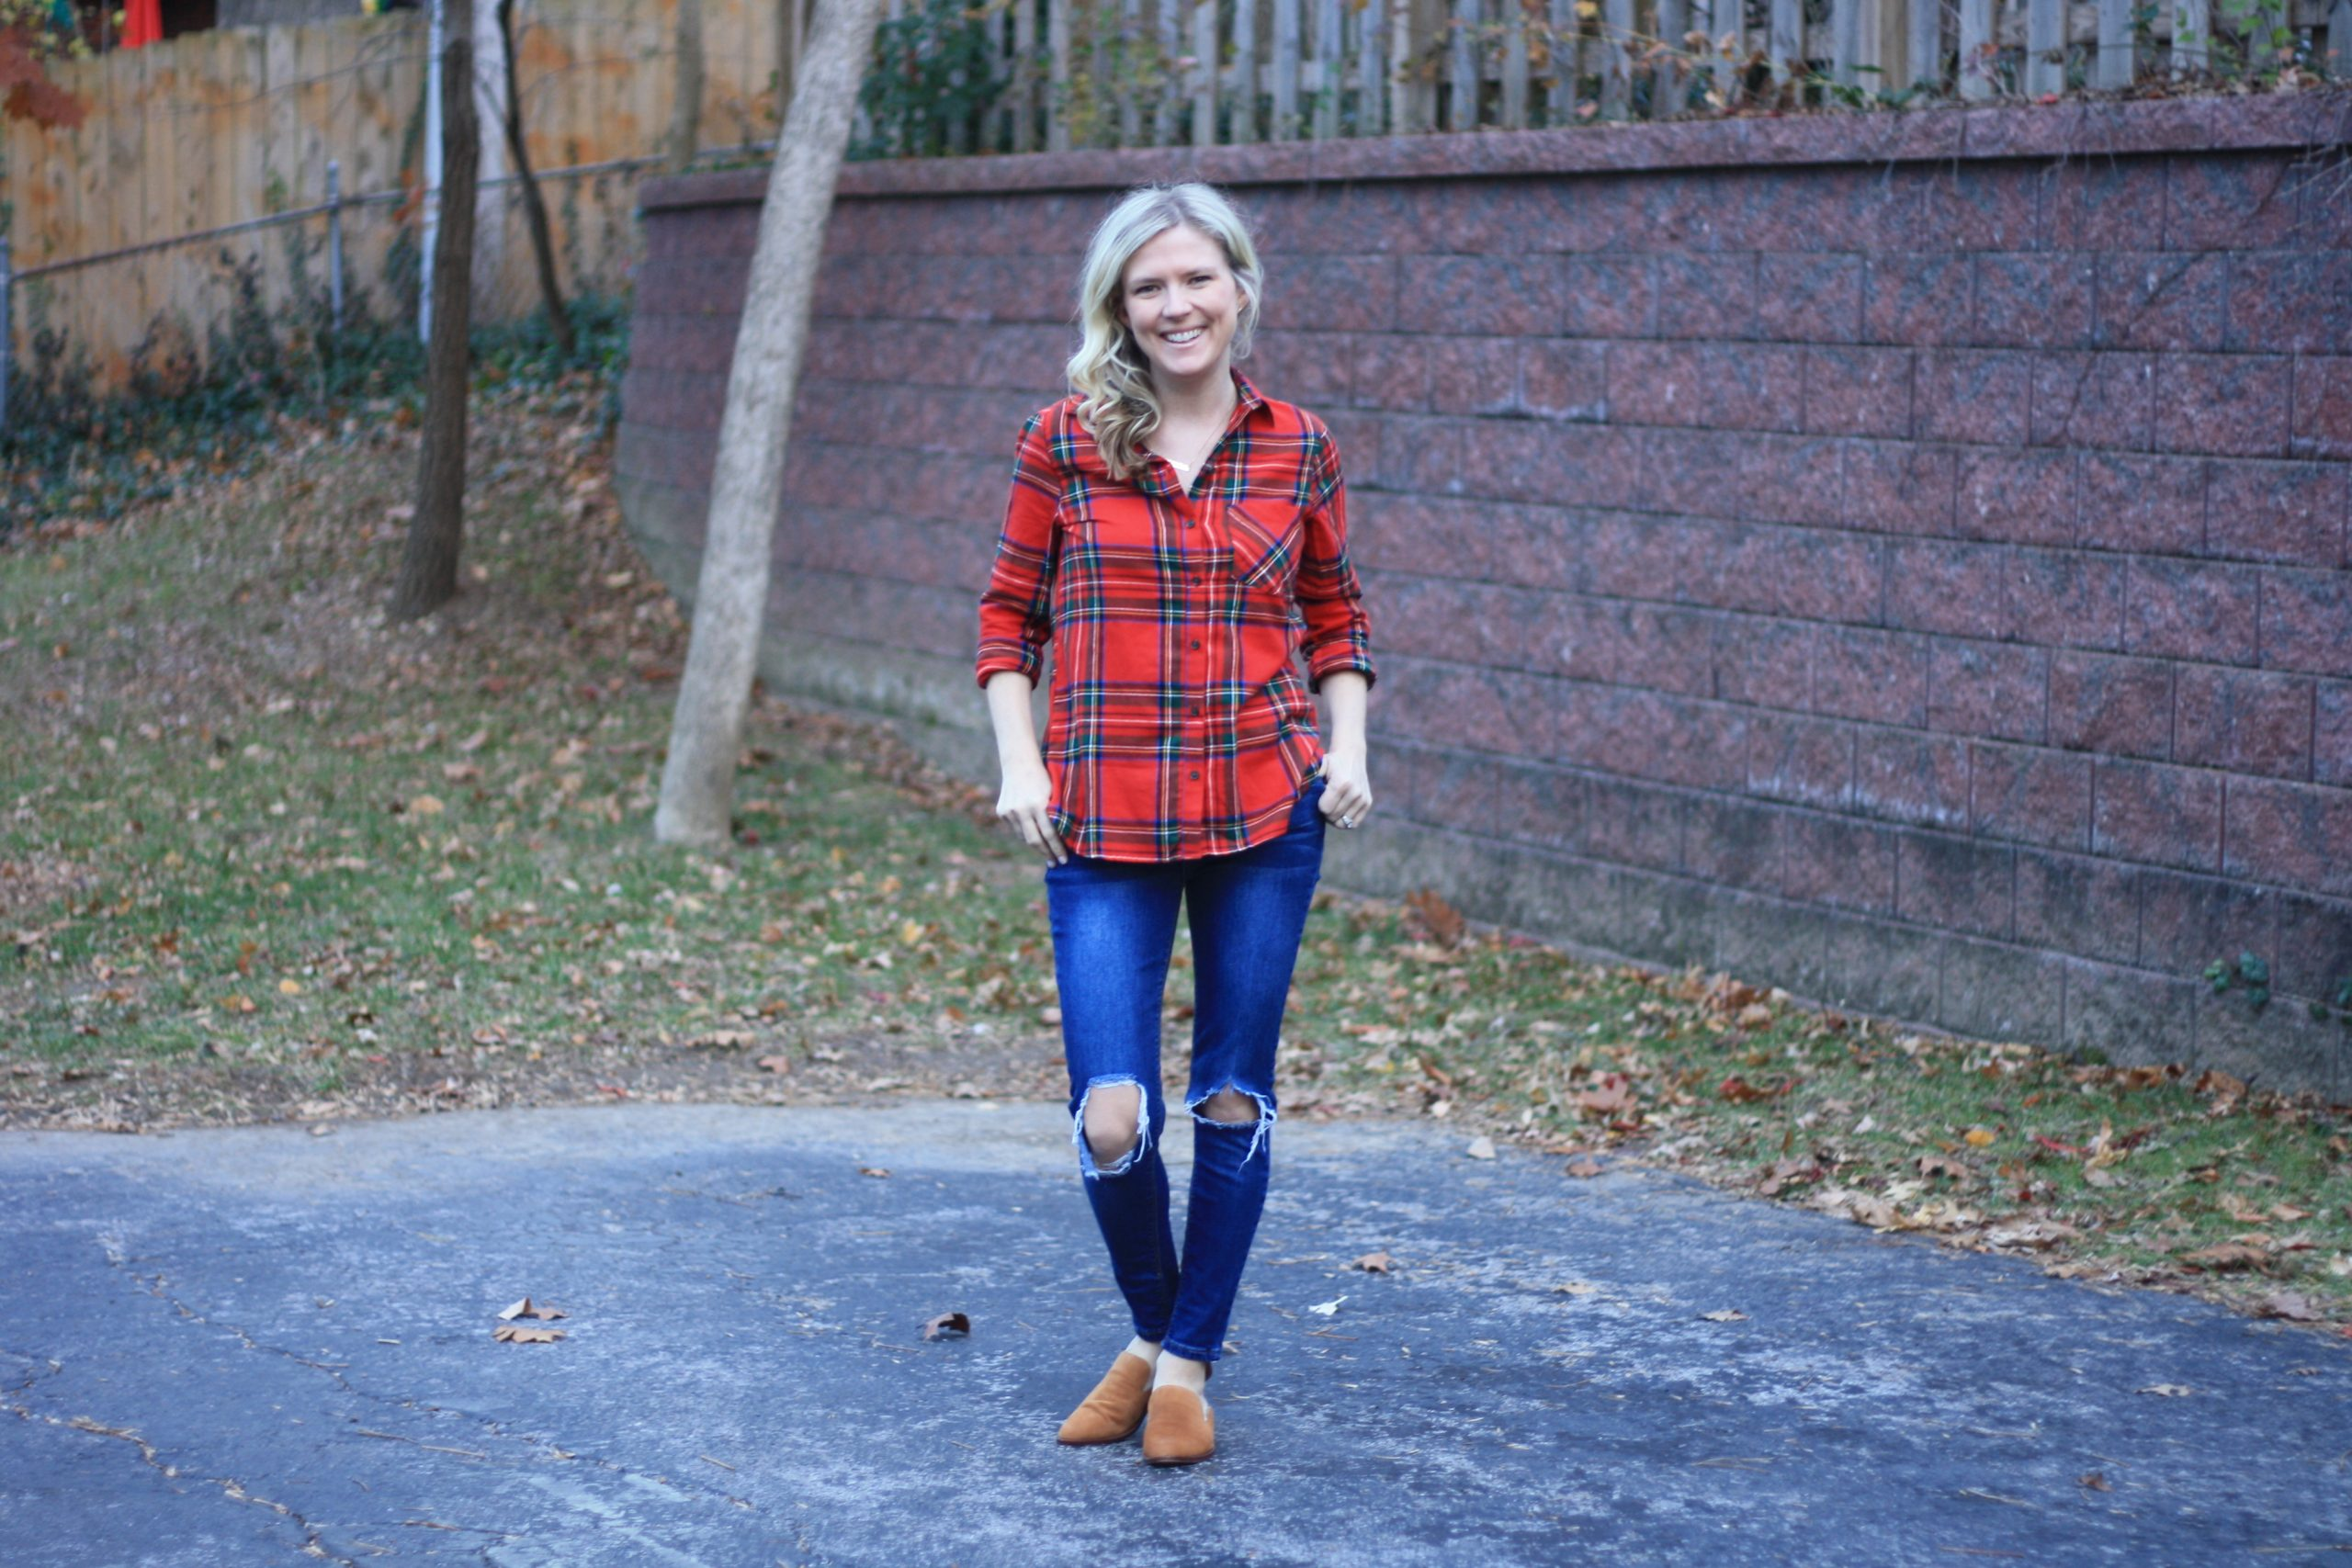 top 3 festive holiday outfits featured by top Missouri fashion blogger, Emmy Lou Styles: image of a blonde woman wearing a red tartan flannel shirt and distressed denim jeans